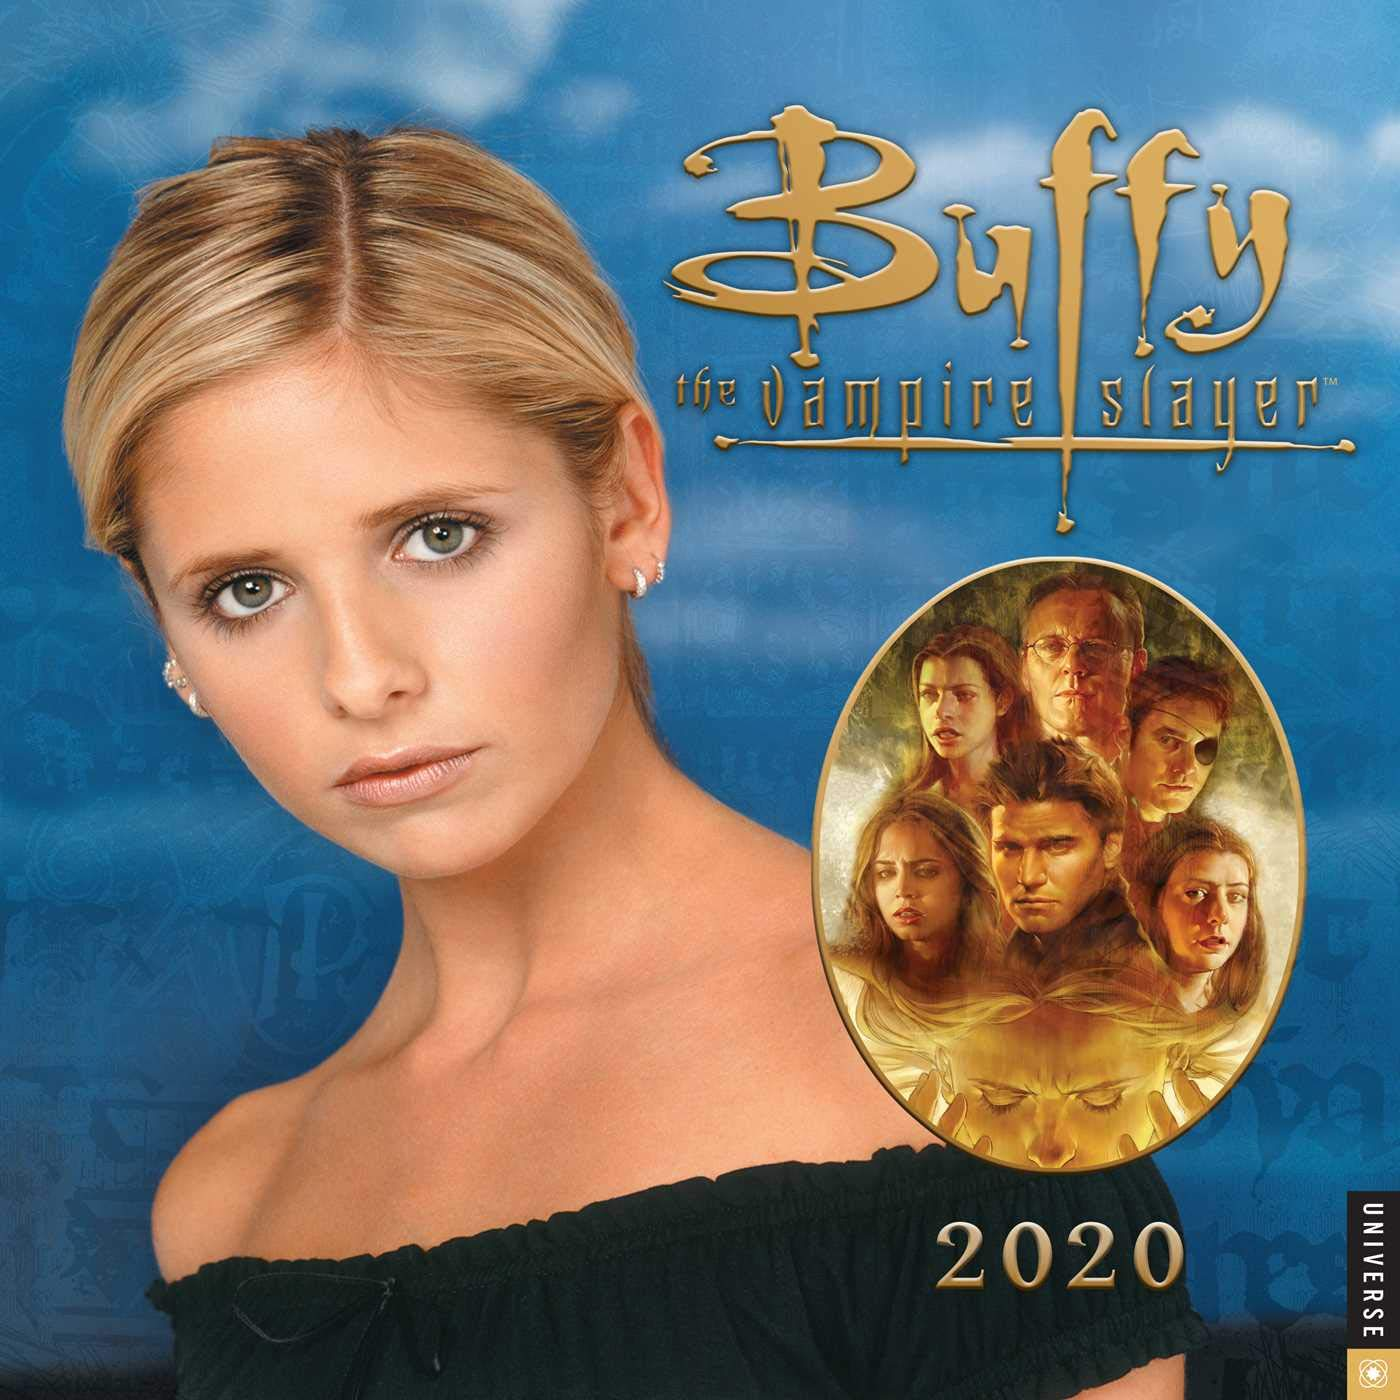 Slayer Tour 2020 Buffy the Vampire Slayer 2020 Wall Calendar: 20th Century Fox